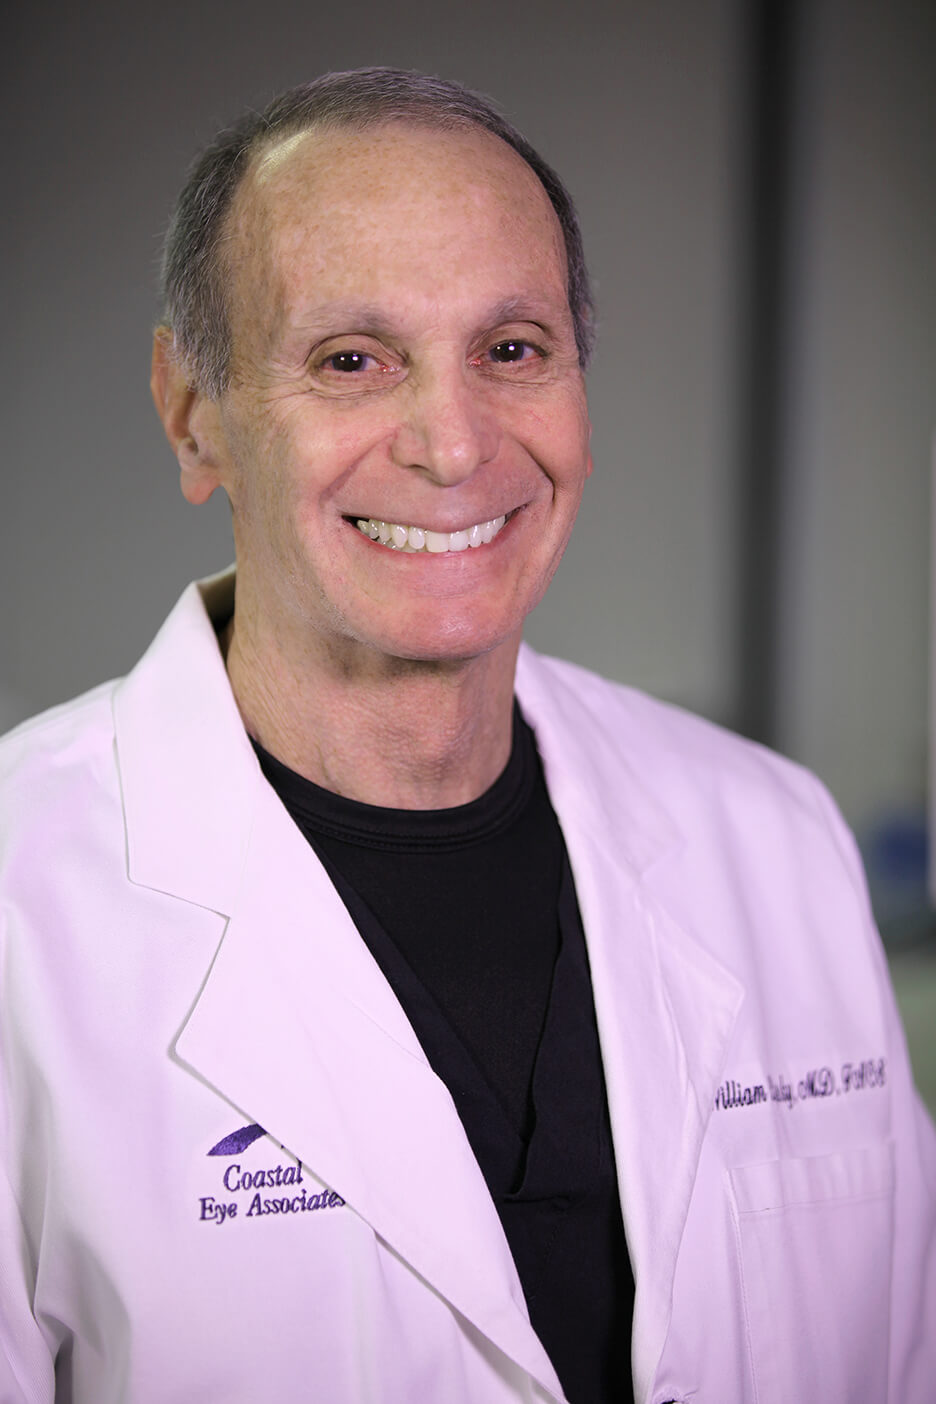 Dr Lipsky, Medical Director of Advanced Laser Vision & Surgical Institute